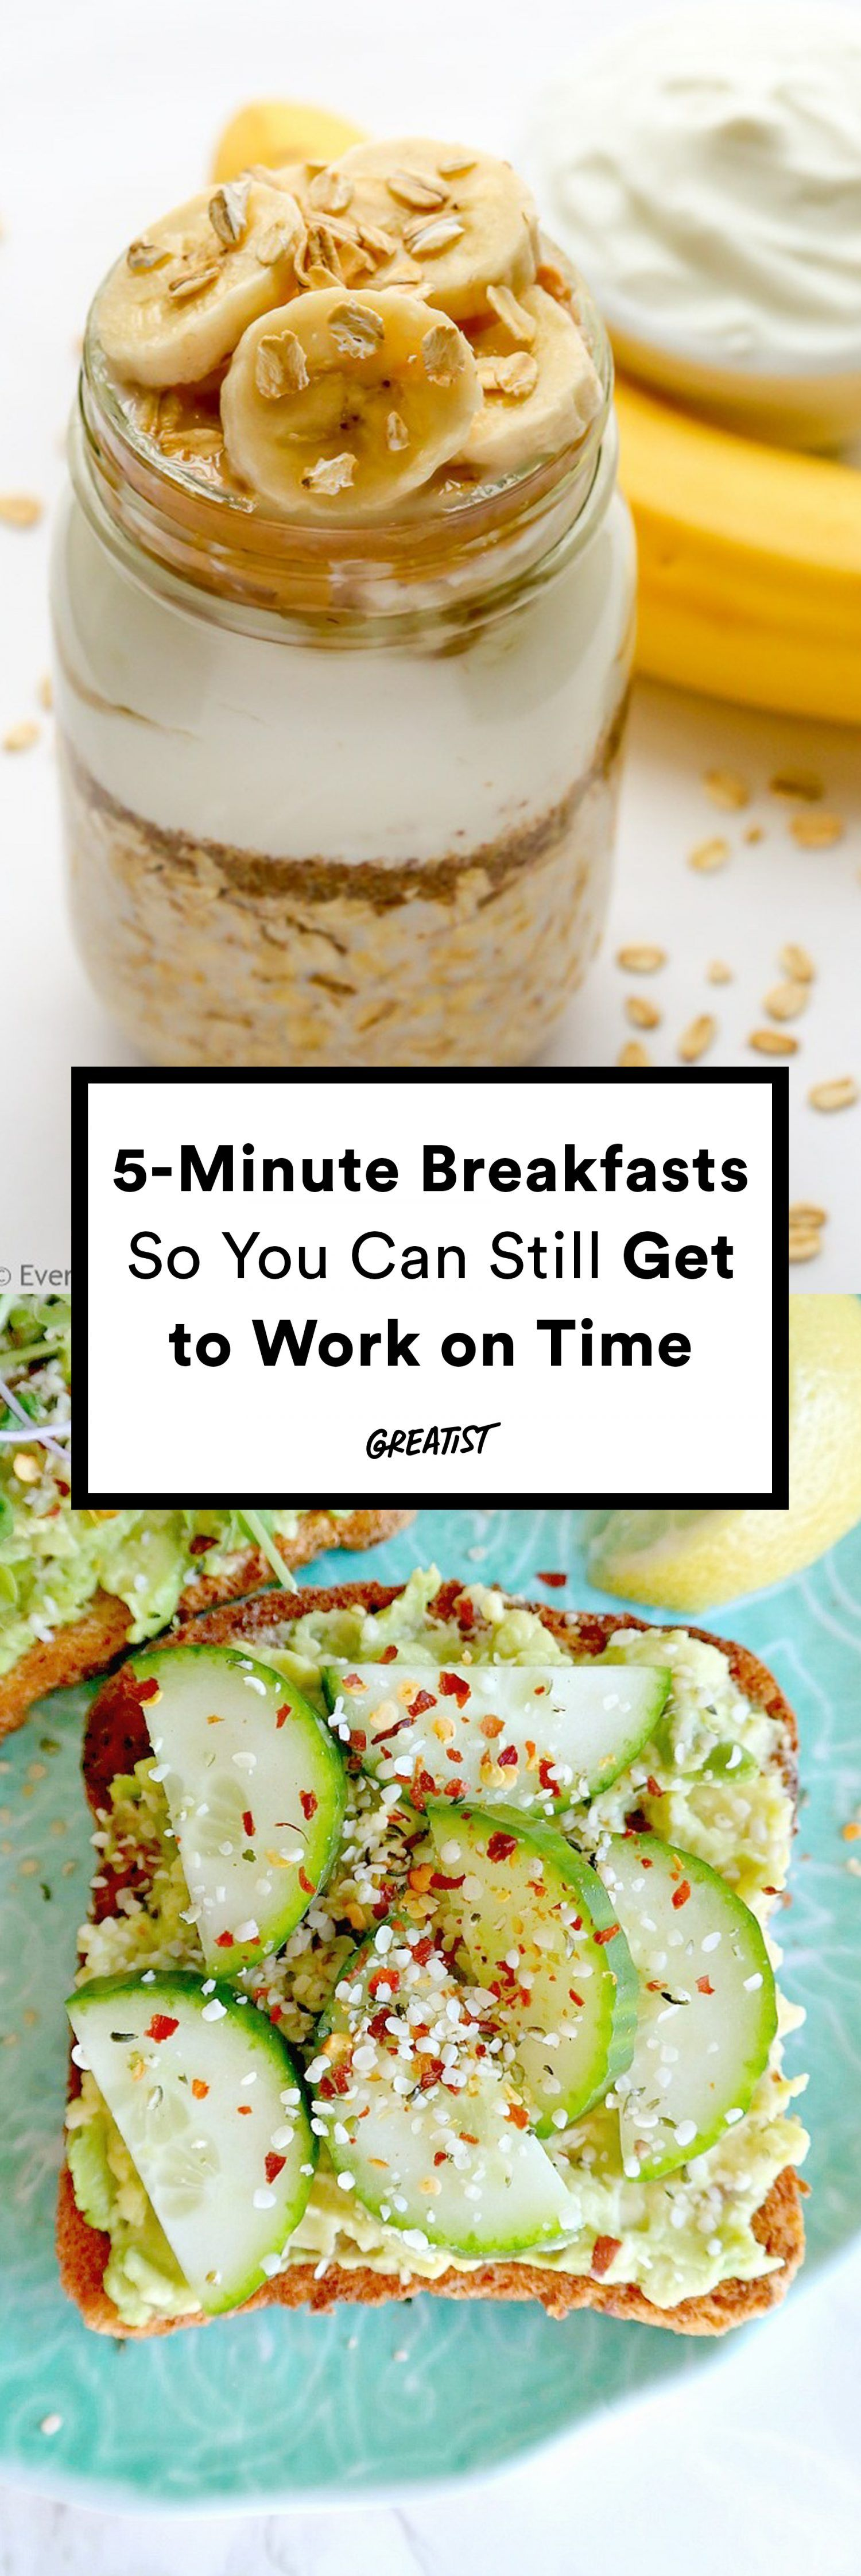 7 Breakfast Ideas That Take 5 Minutes to Make